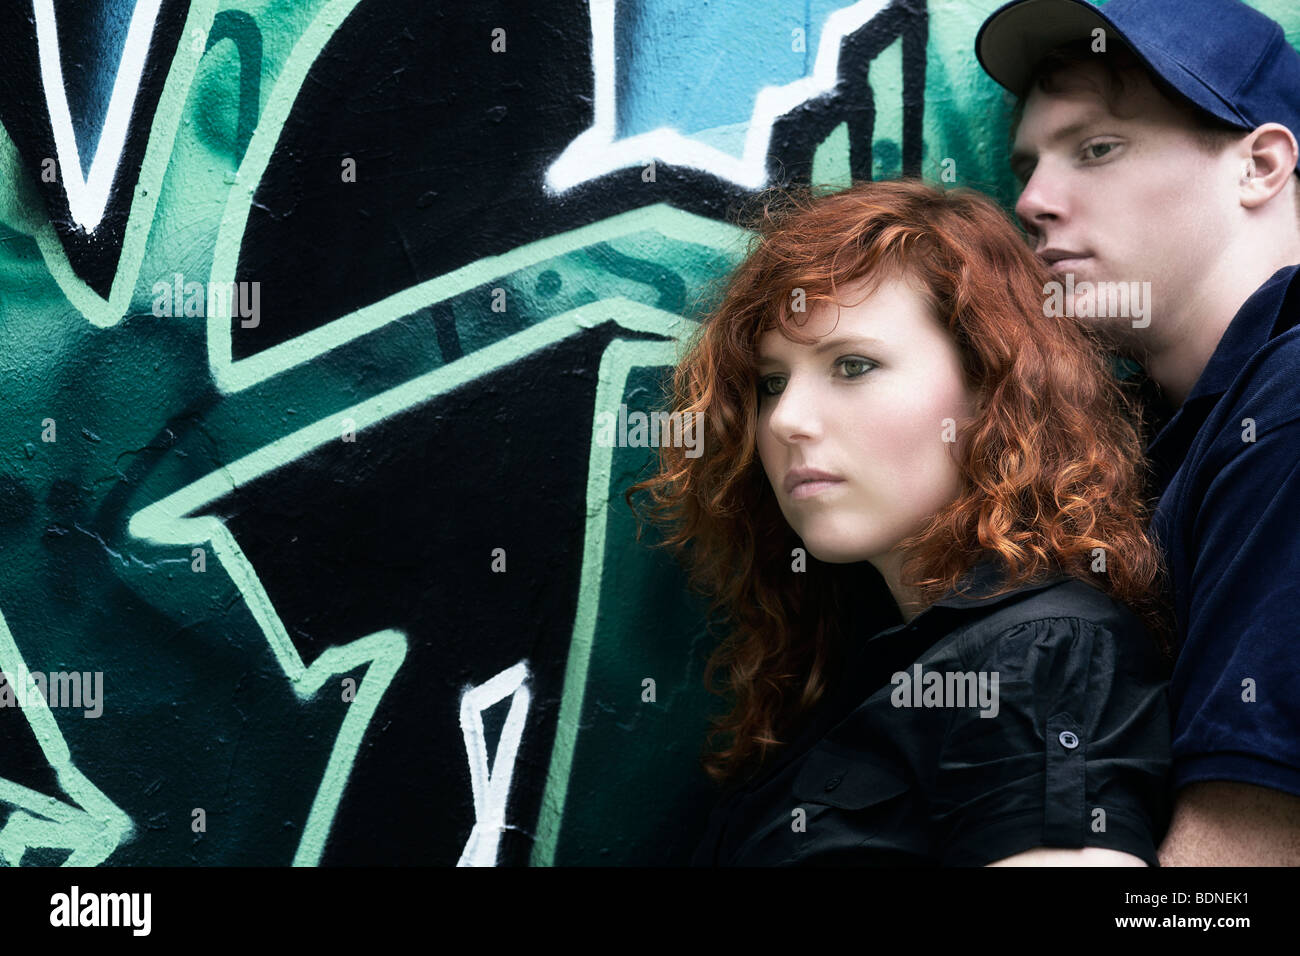 Young couple in front of a graffiti-sprayed wall - Stock Image